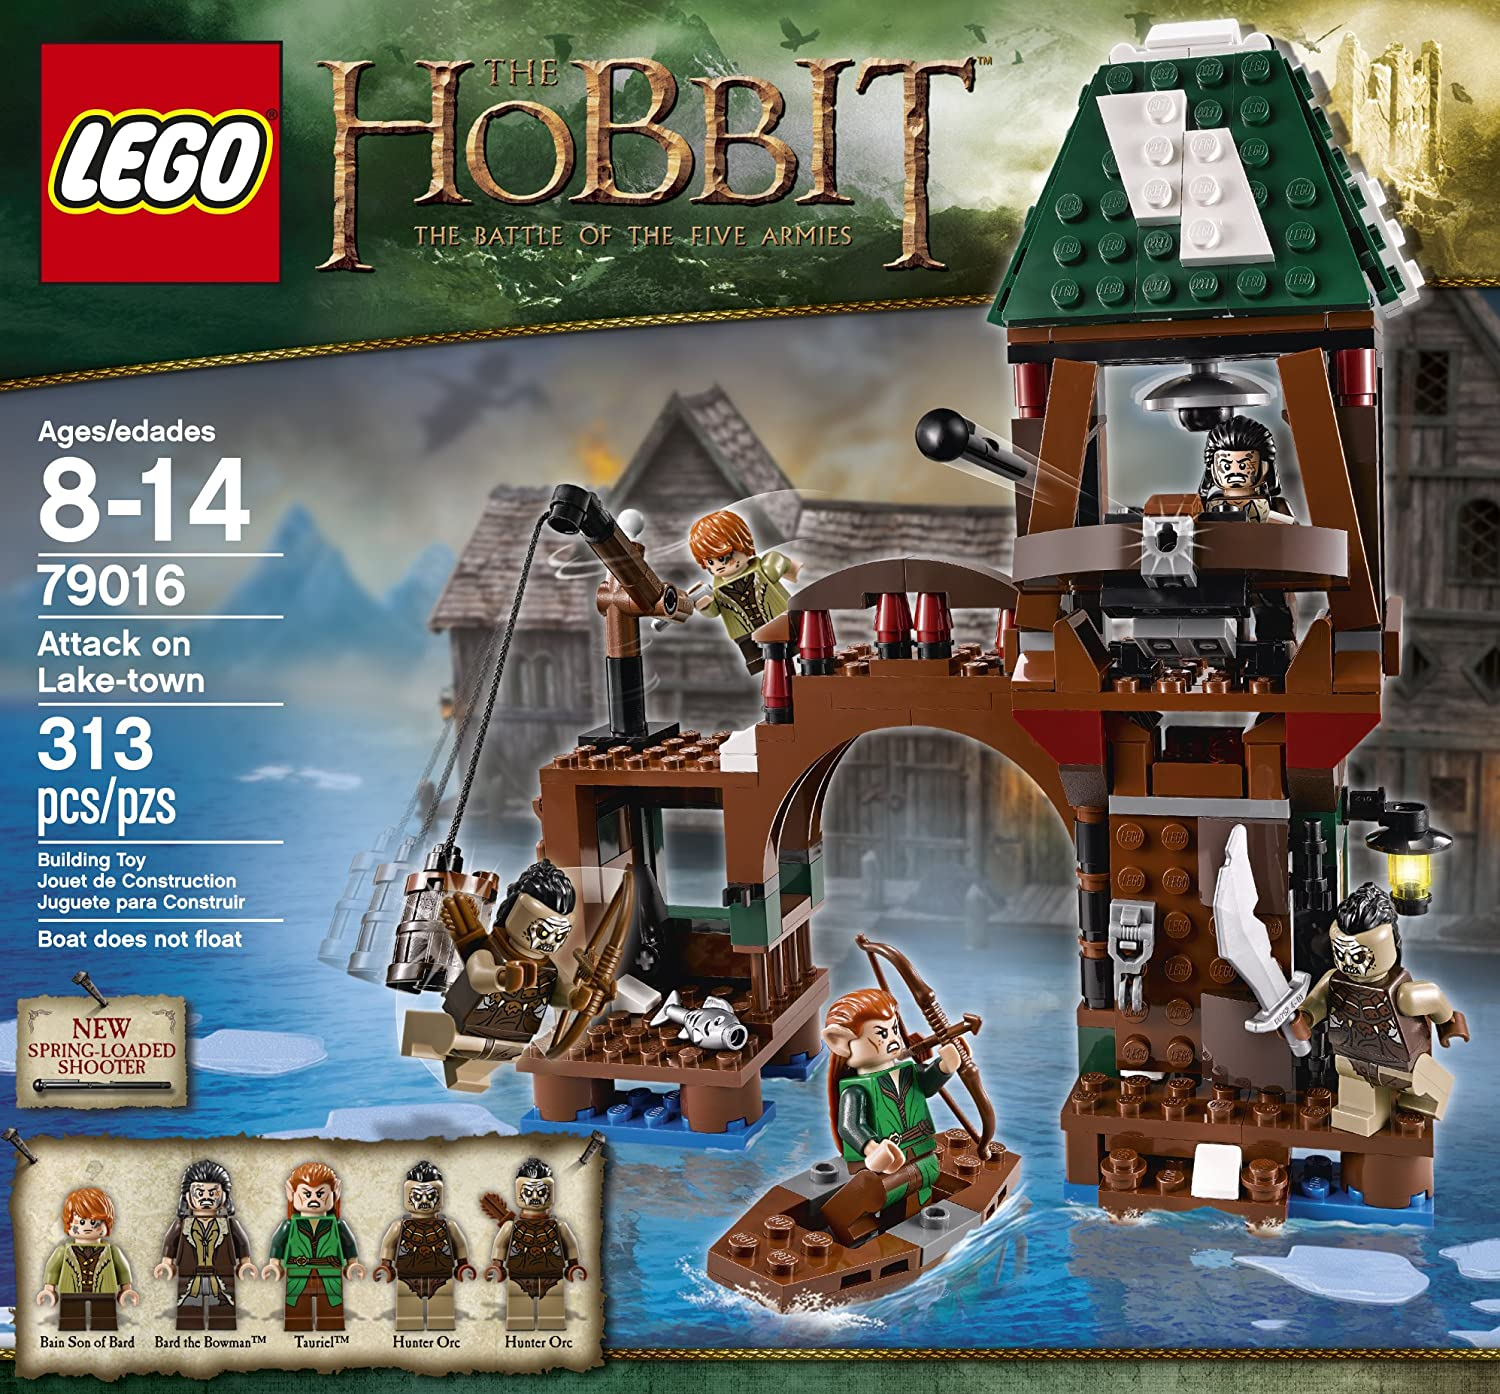 Lego The Hobbit 79016 Attack on Lake-town